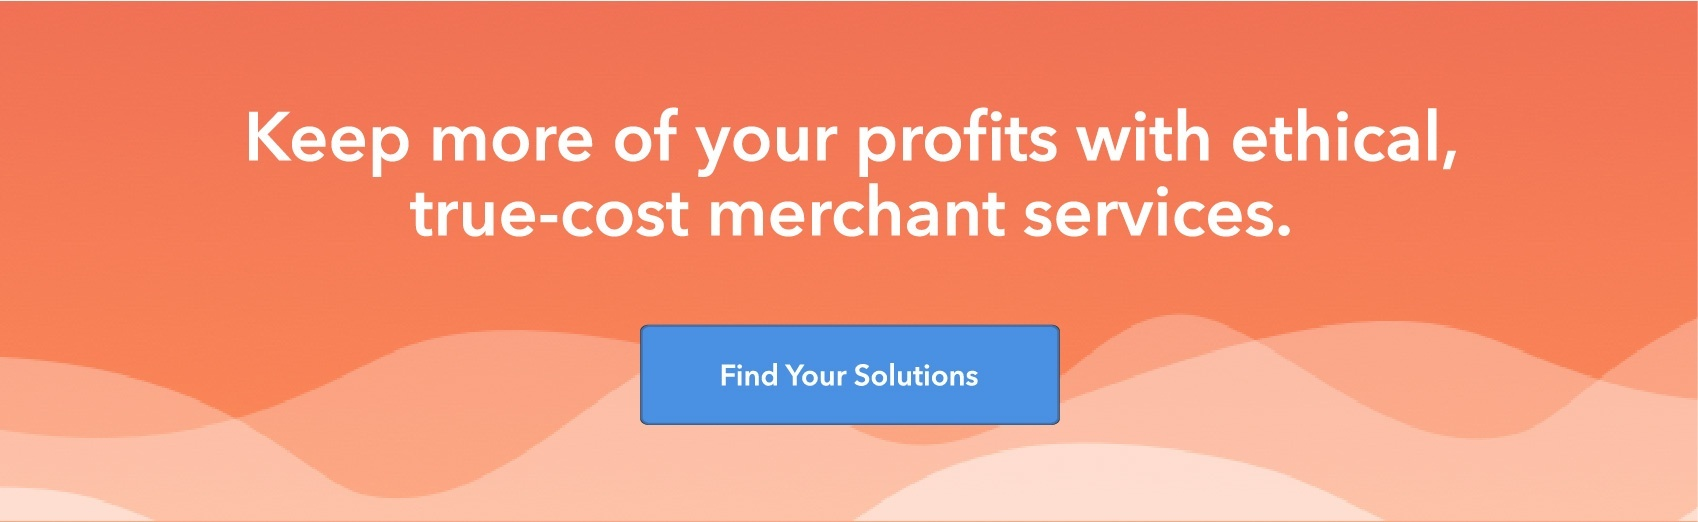 Keep more of your profits with ethical, true-cost merchant services.  Find your solutions.